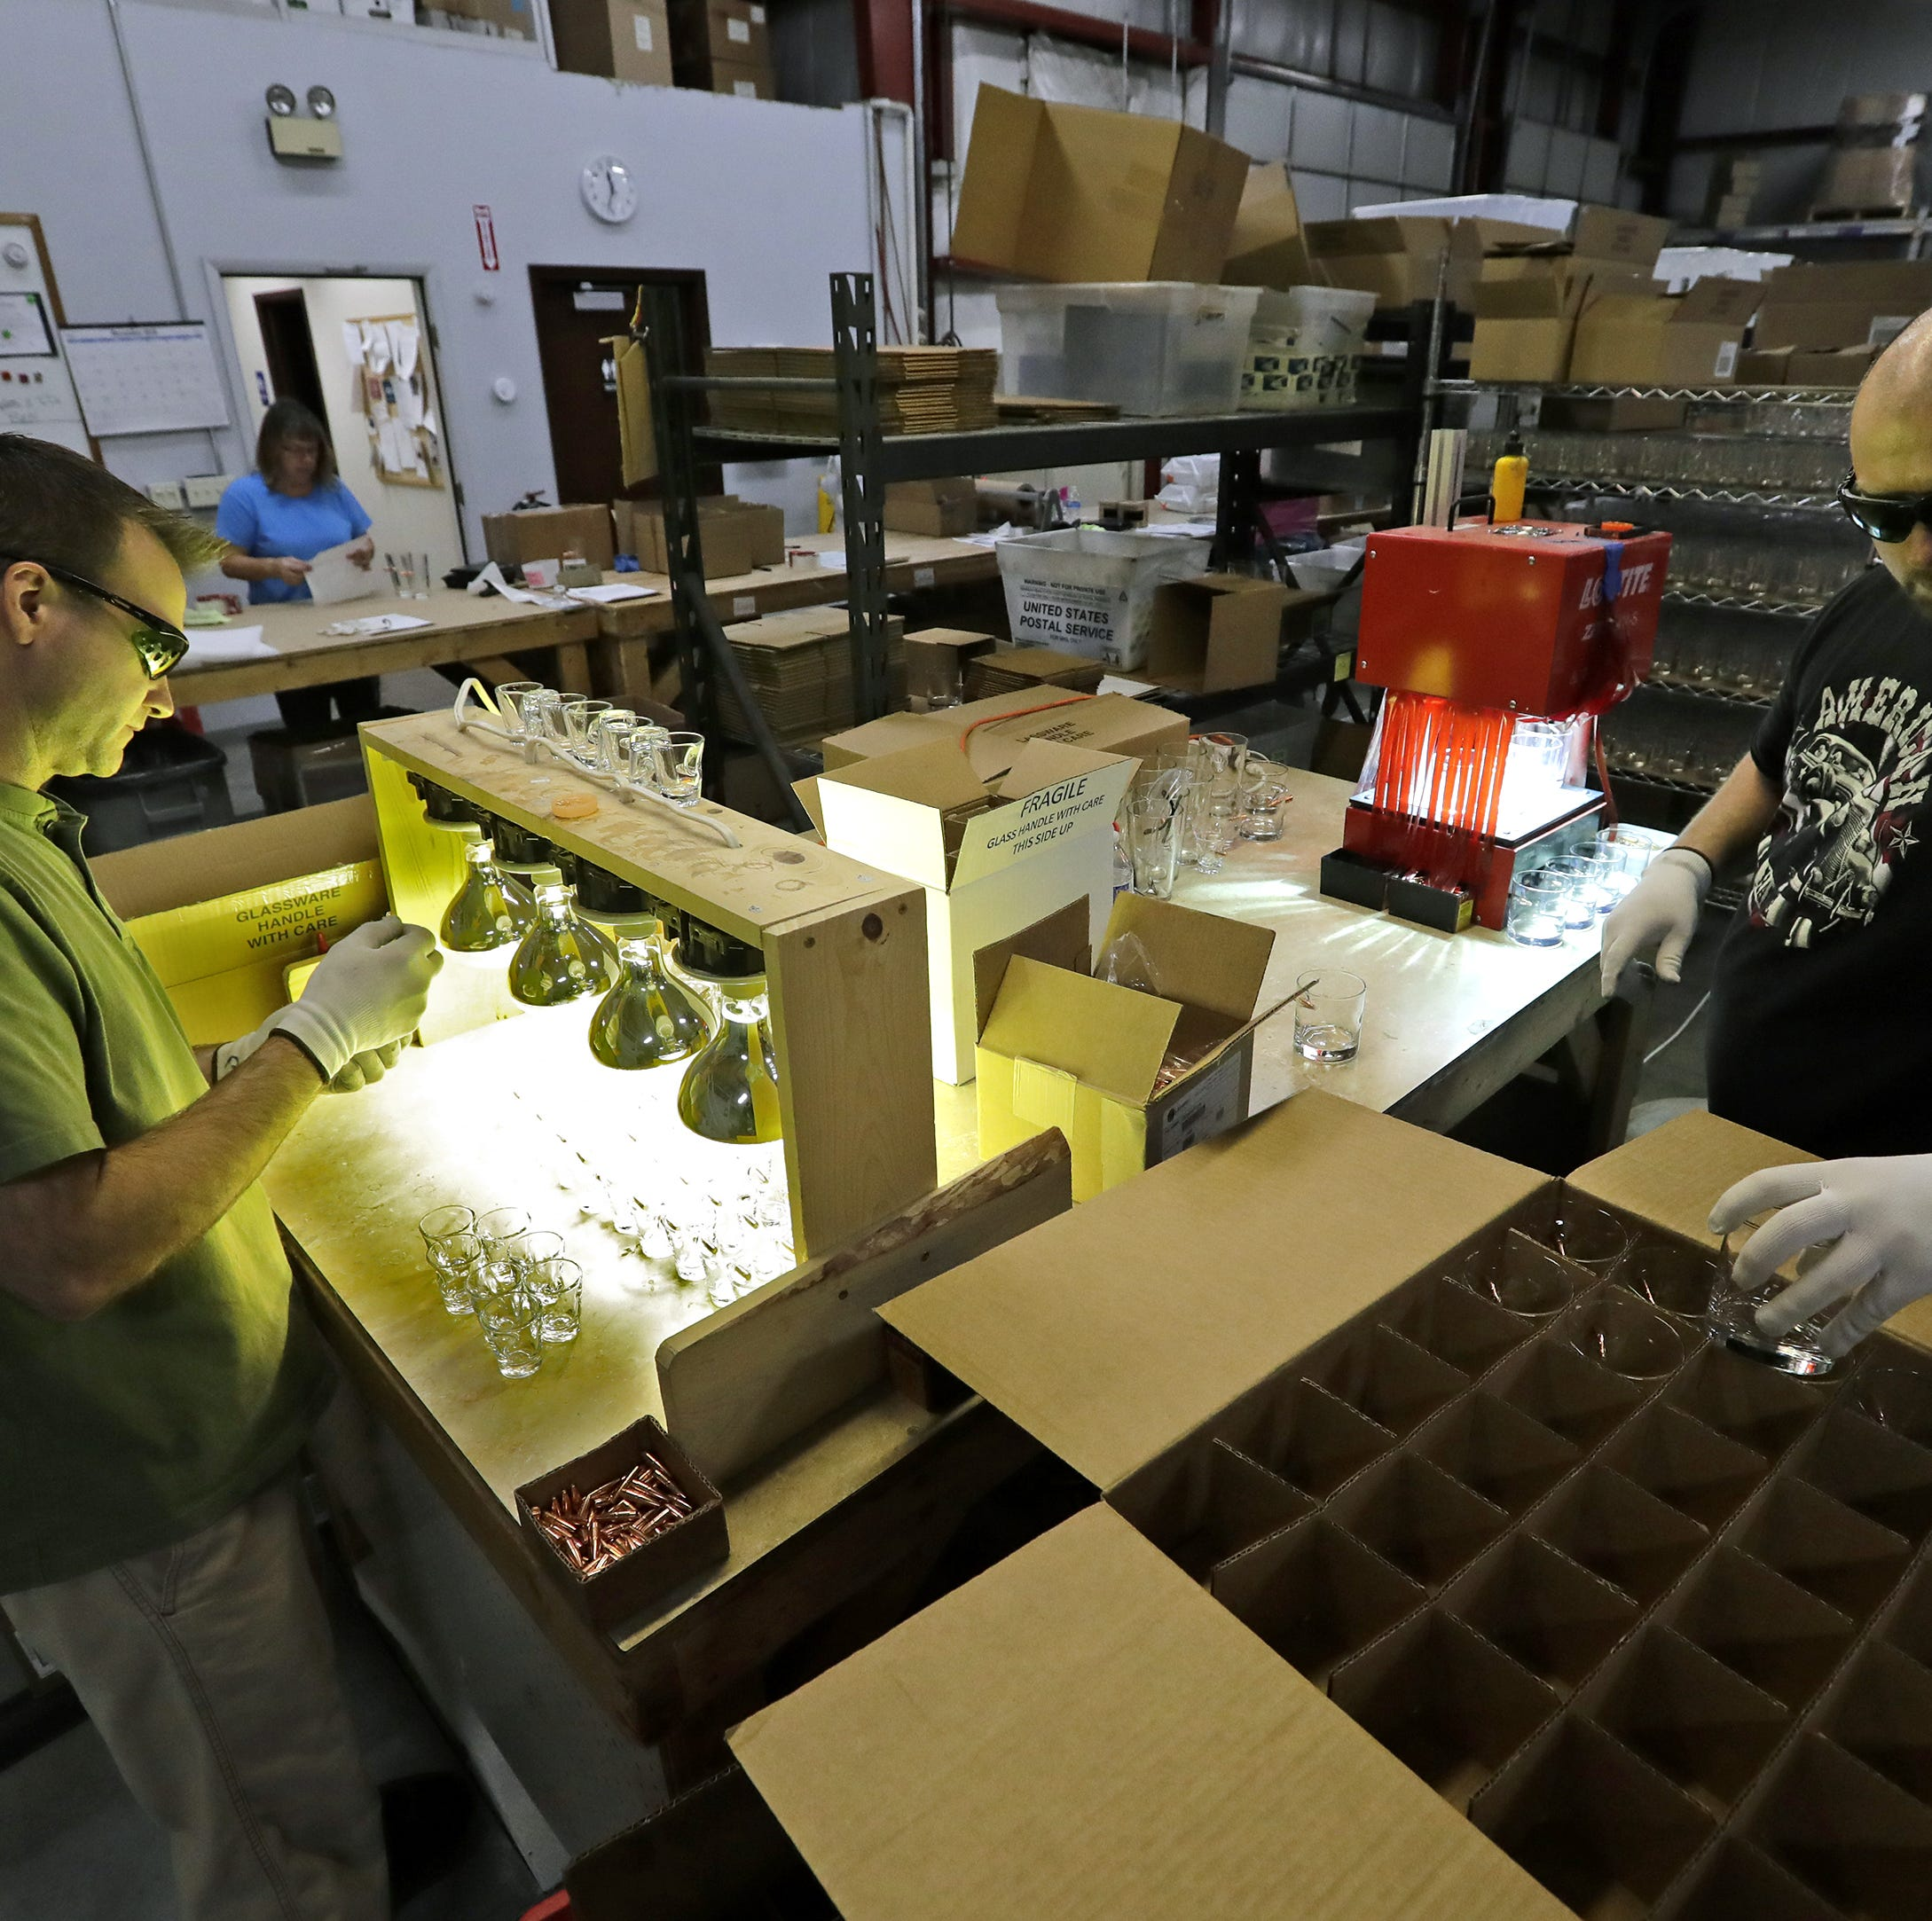 Hortonville firm flooded with calls after buying all its workers handguns for Christmas